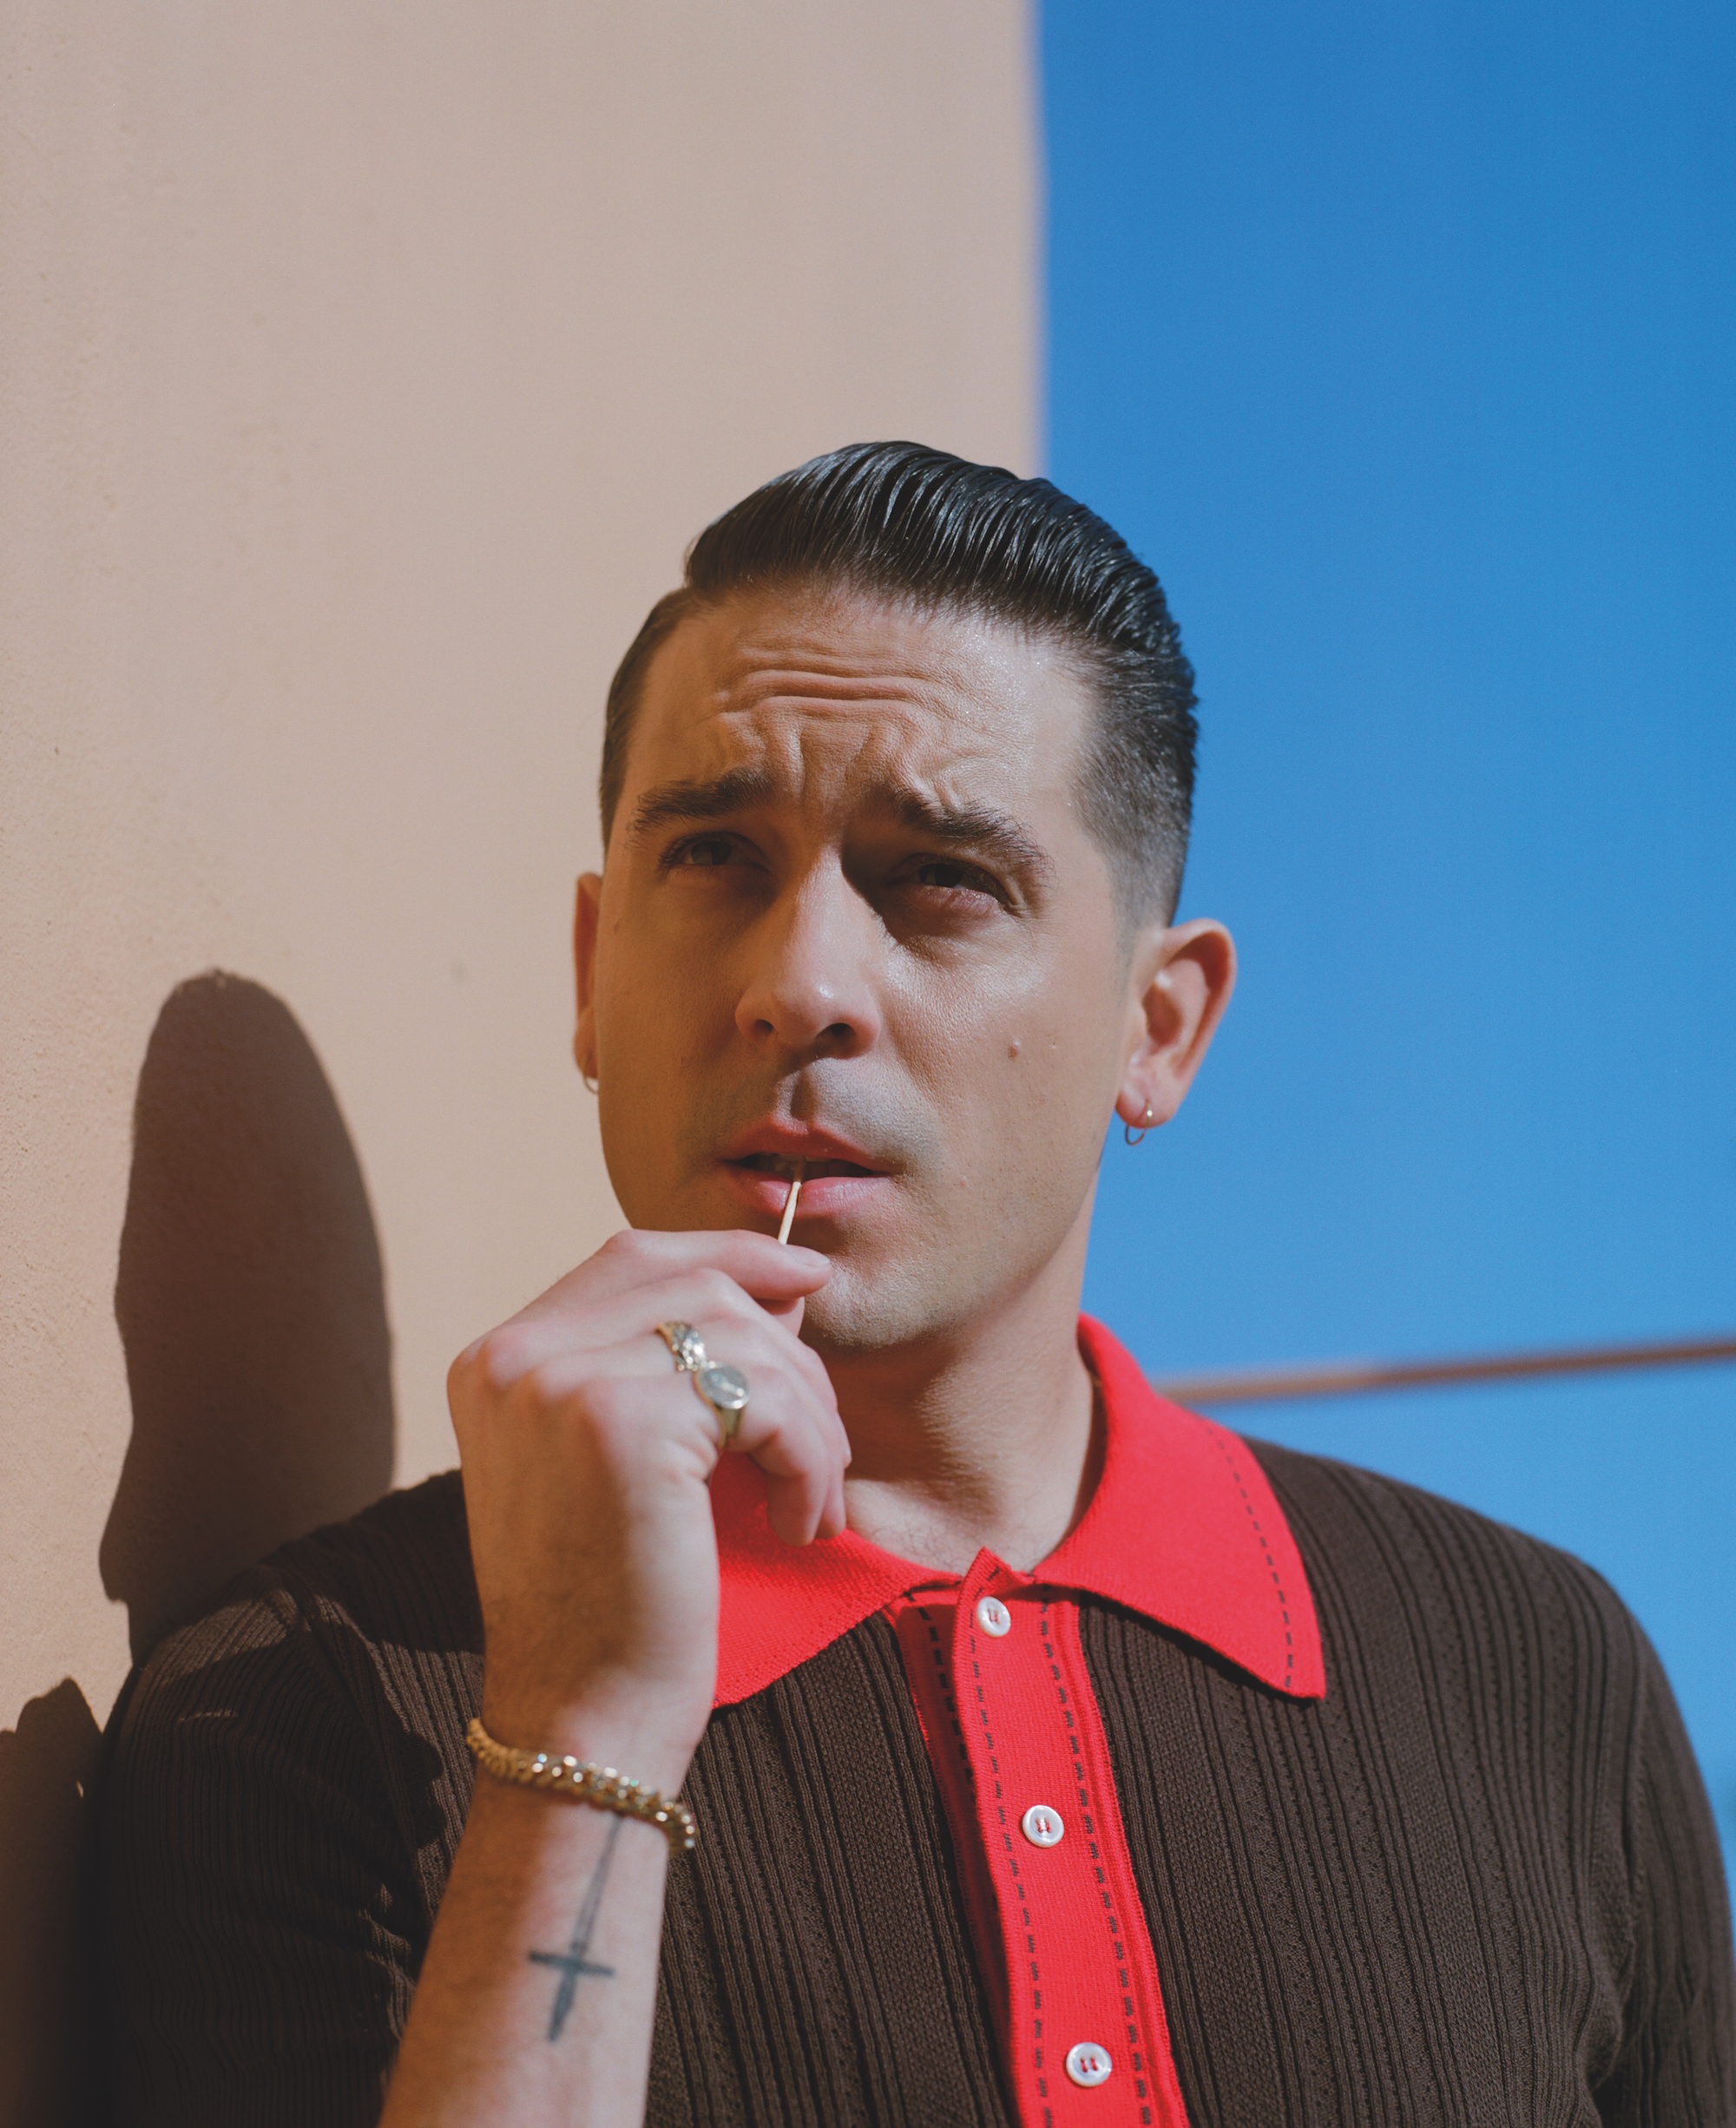 G eazy wearing a red and brown polo neck t-shirt